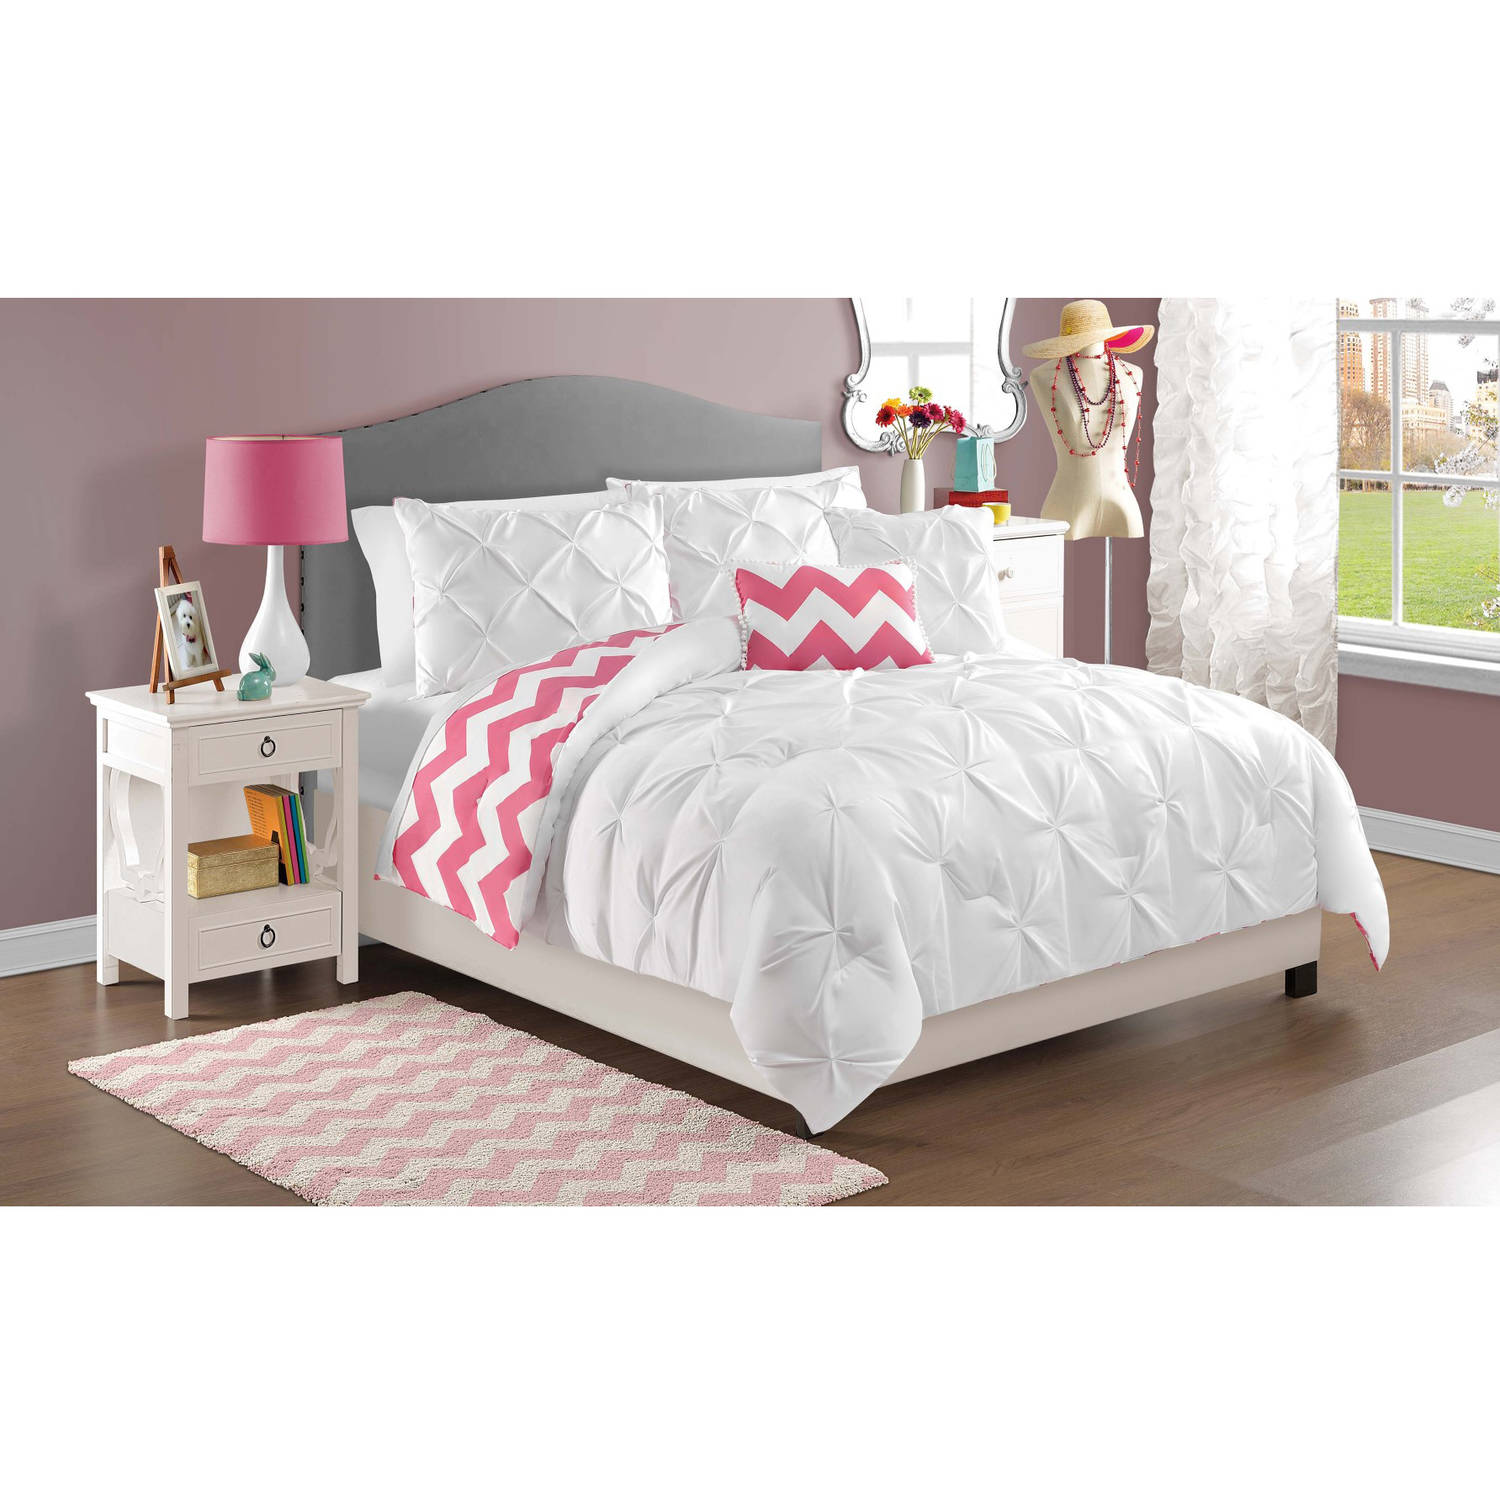 VCNY Home White Kara Pintuck Reversible Chevron Bedding Comforter Set, Decorative Pillows Included